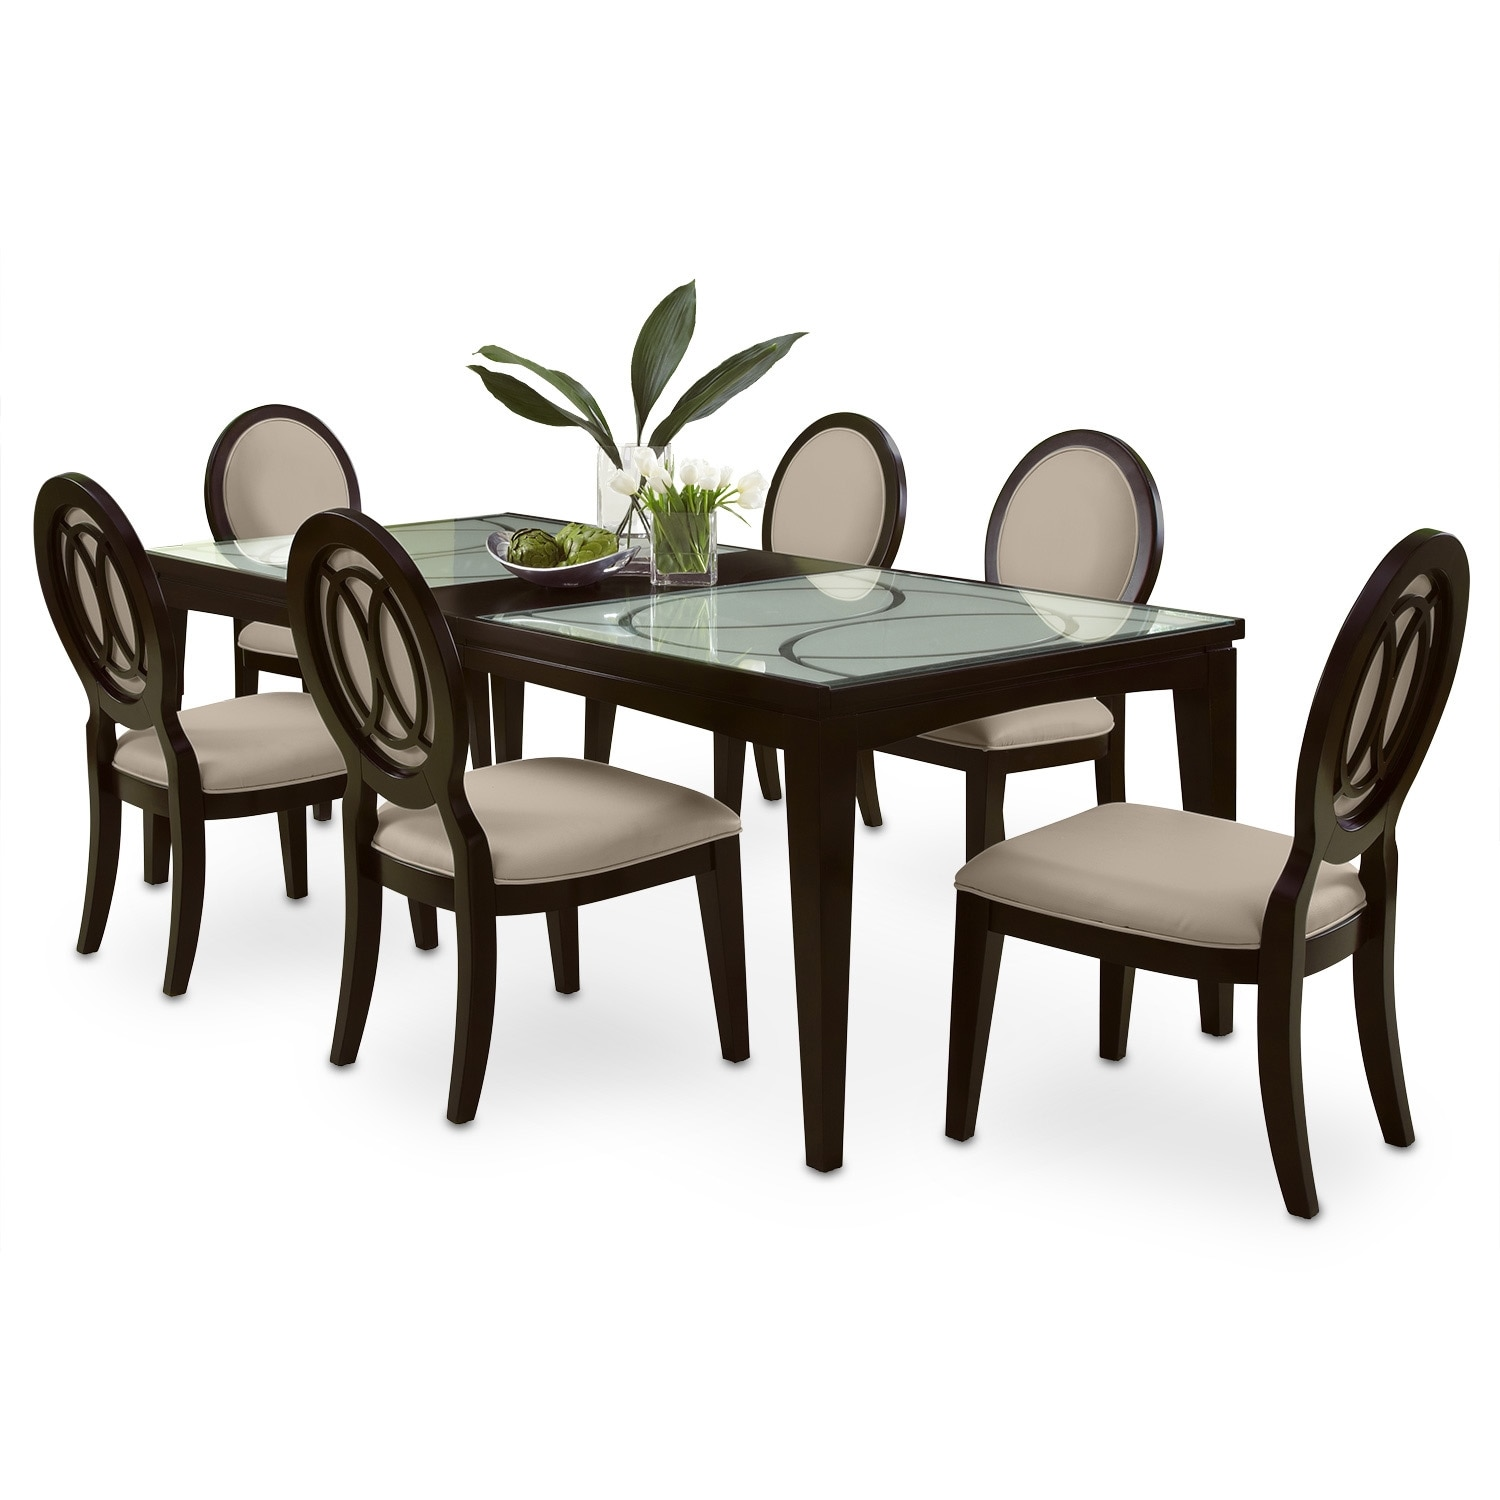 Cosmo 7 Pc Dining Room American Signature Furniture : 297373 from www.americansignaturefurniture.com size 1500 x 1500 jpeg 419kB